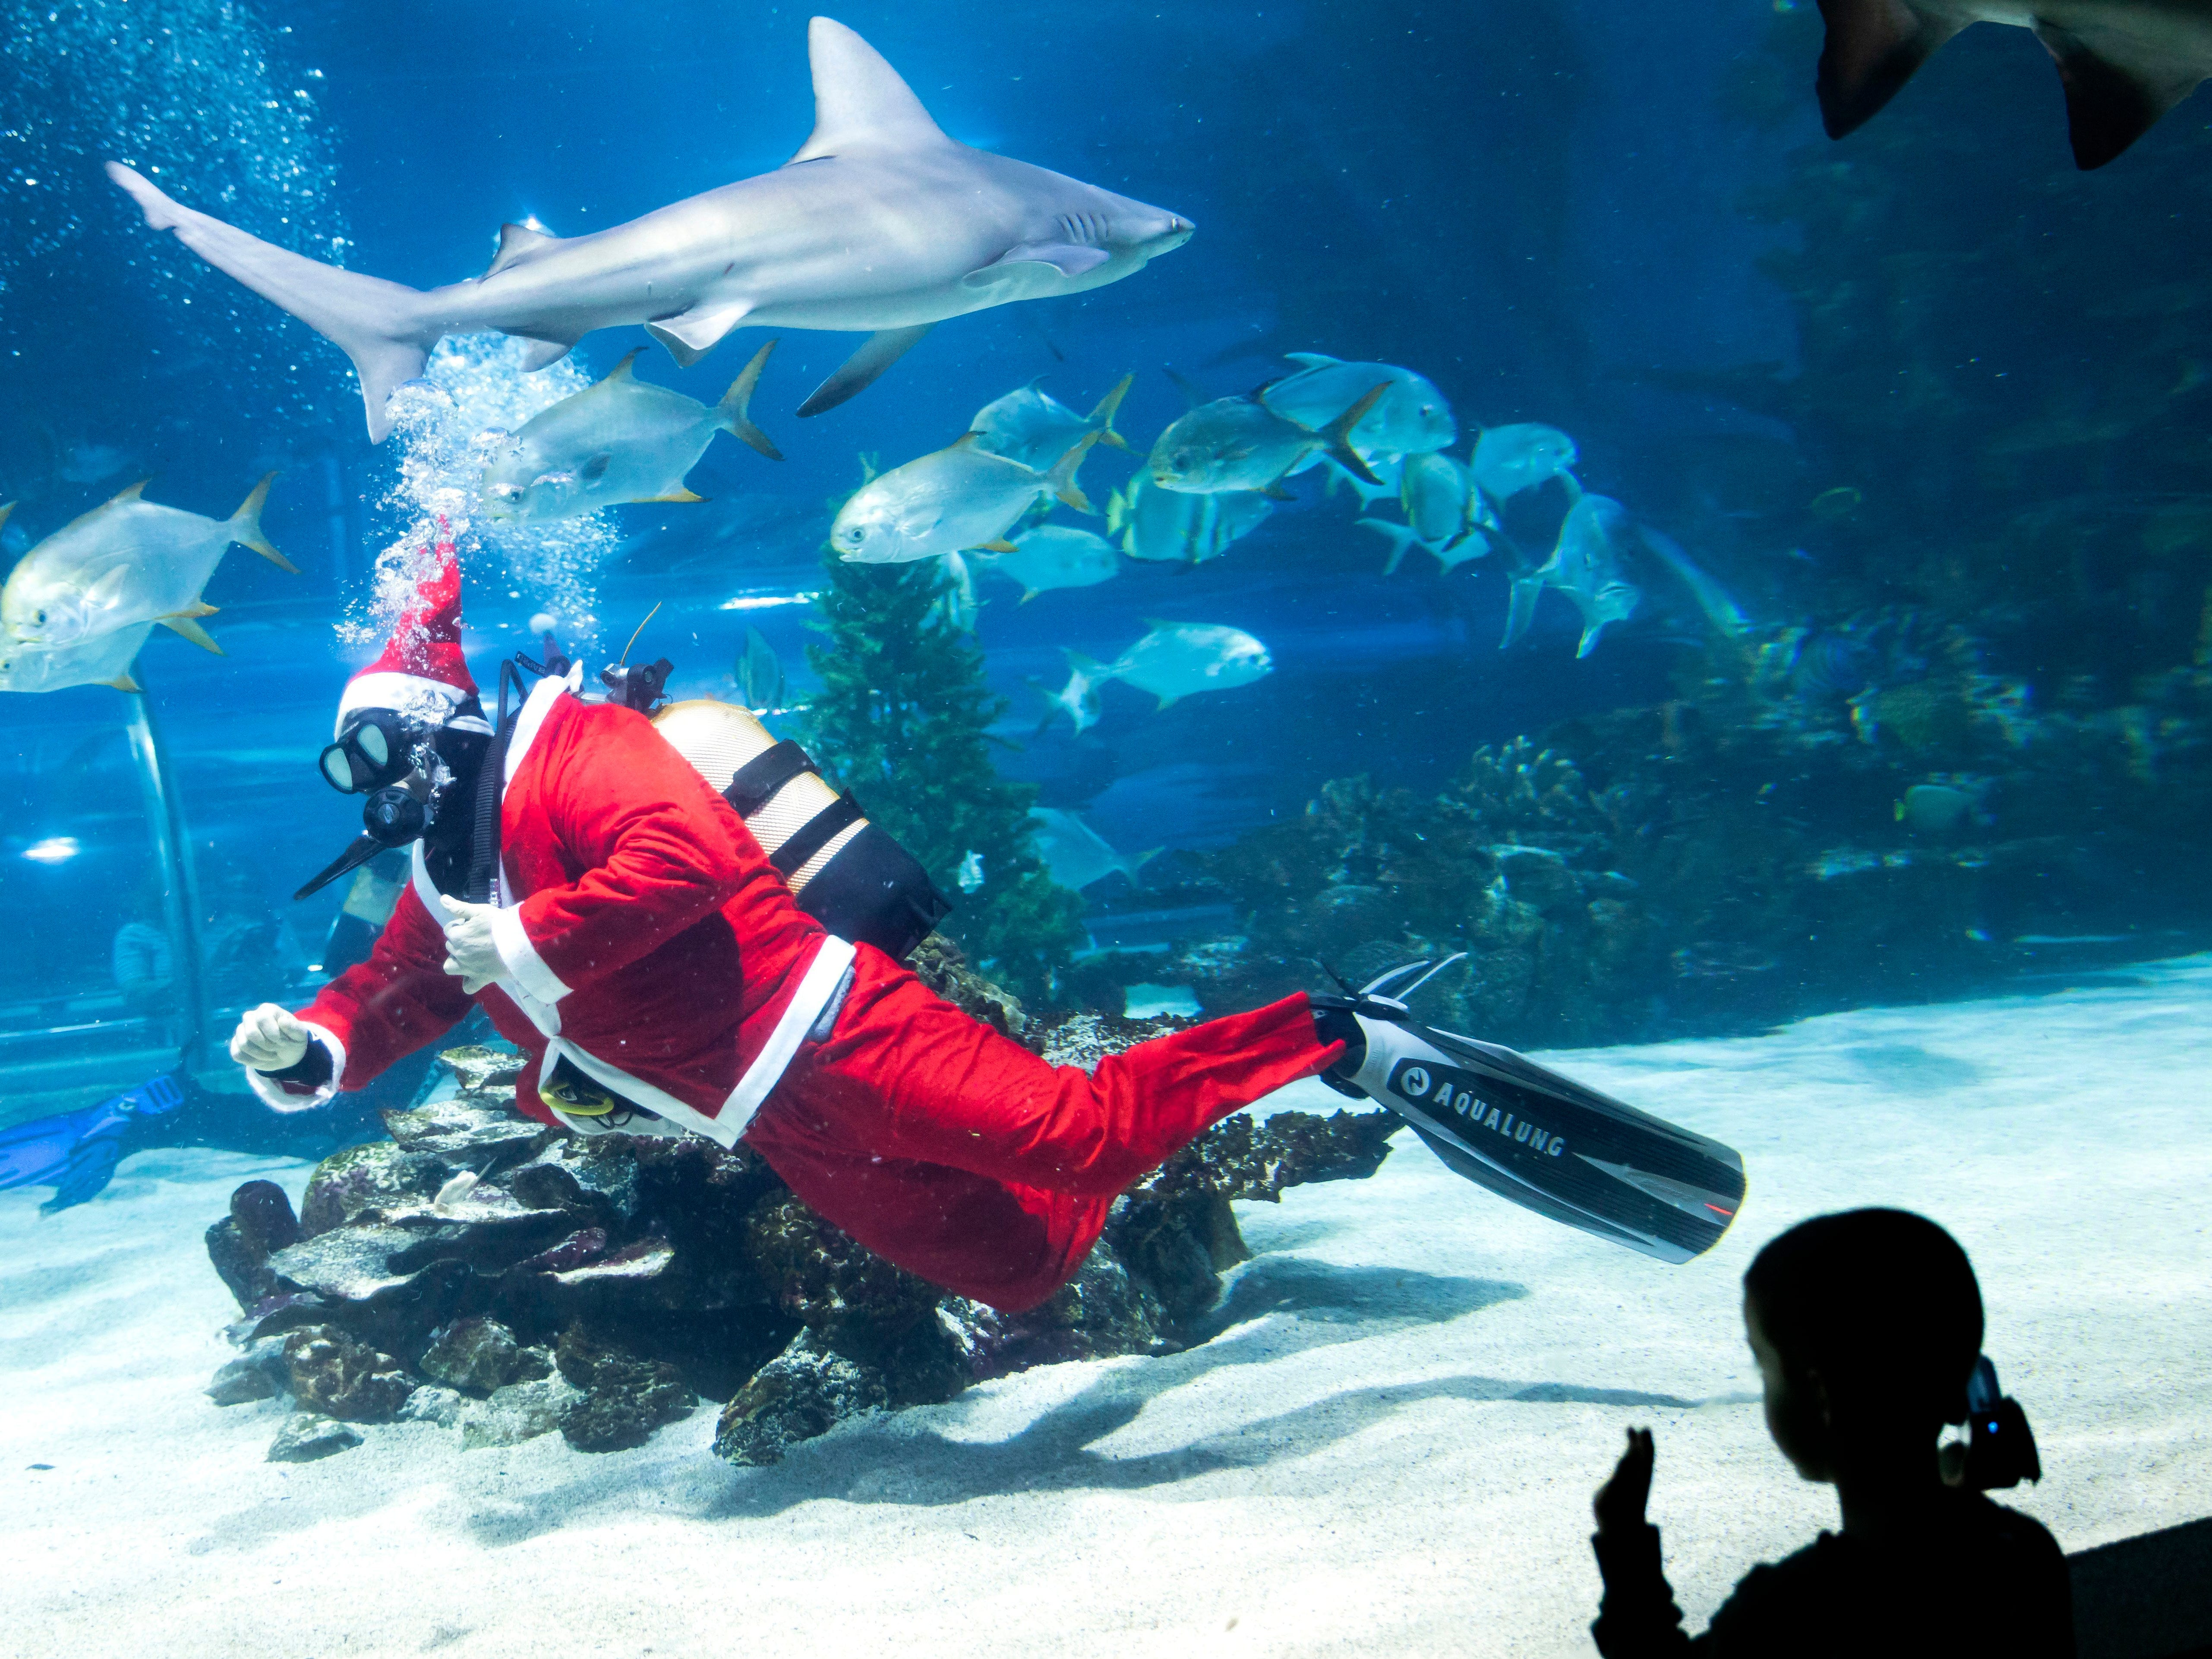 A scuba diver decorates a Christmas tree with seashells in a fish tank of the Tropicarium in Budapest, Hungary, Dec 6, 2018. The diving Santa is part of a show to celebrate the Christmas season and promote the aquarium to increase the number of visitors.